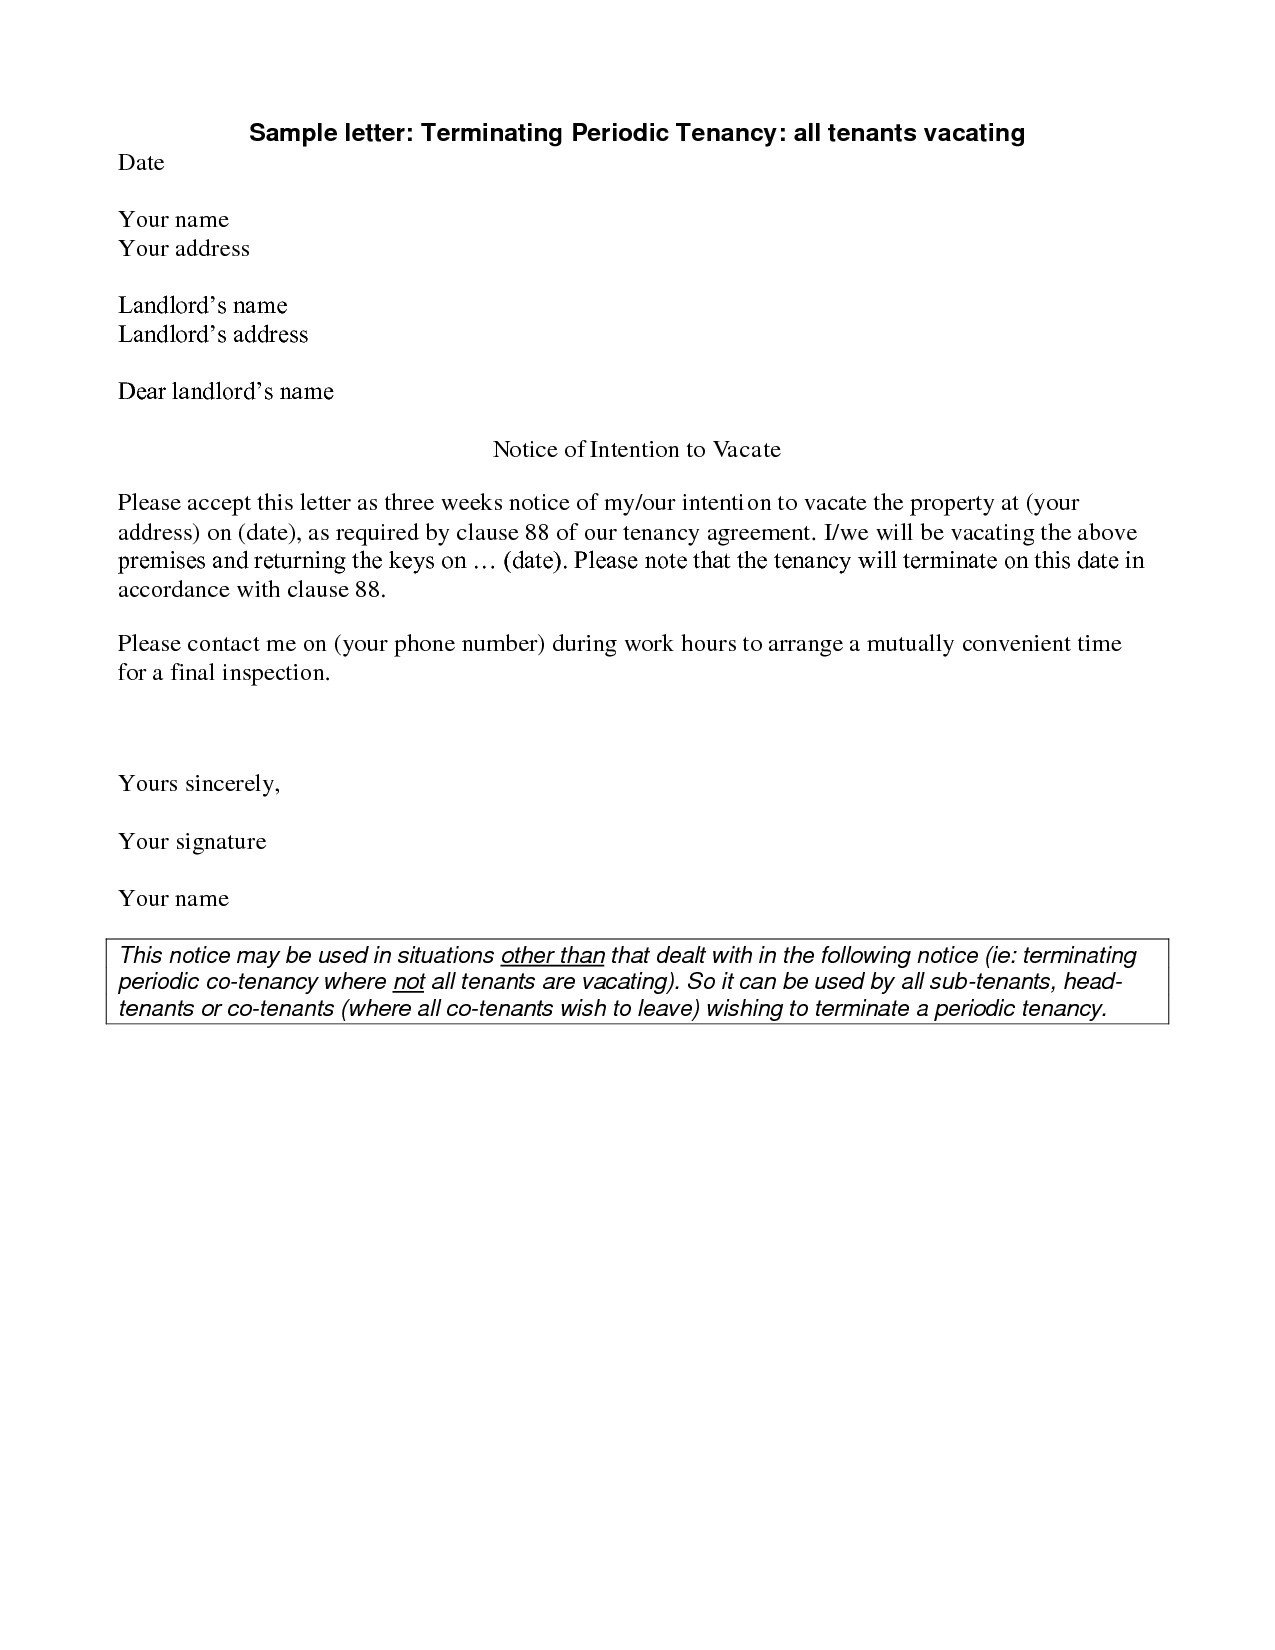 Unauthorized Tenant Letter Template Unauthorized Tenant Letter Template Samples